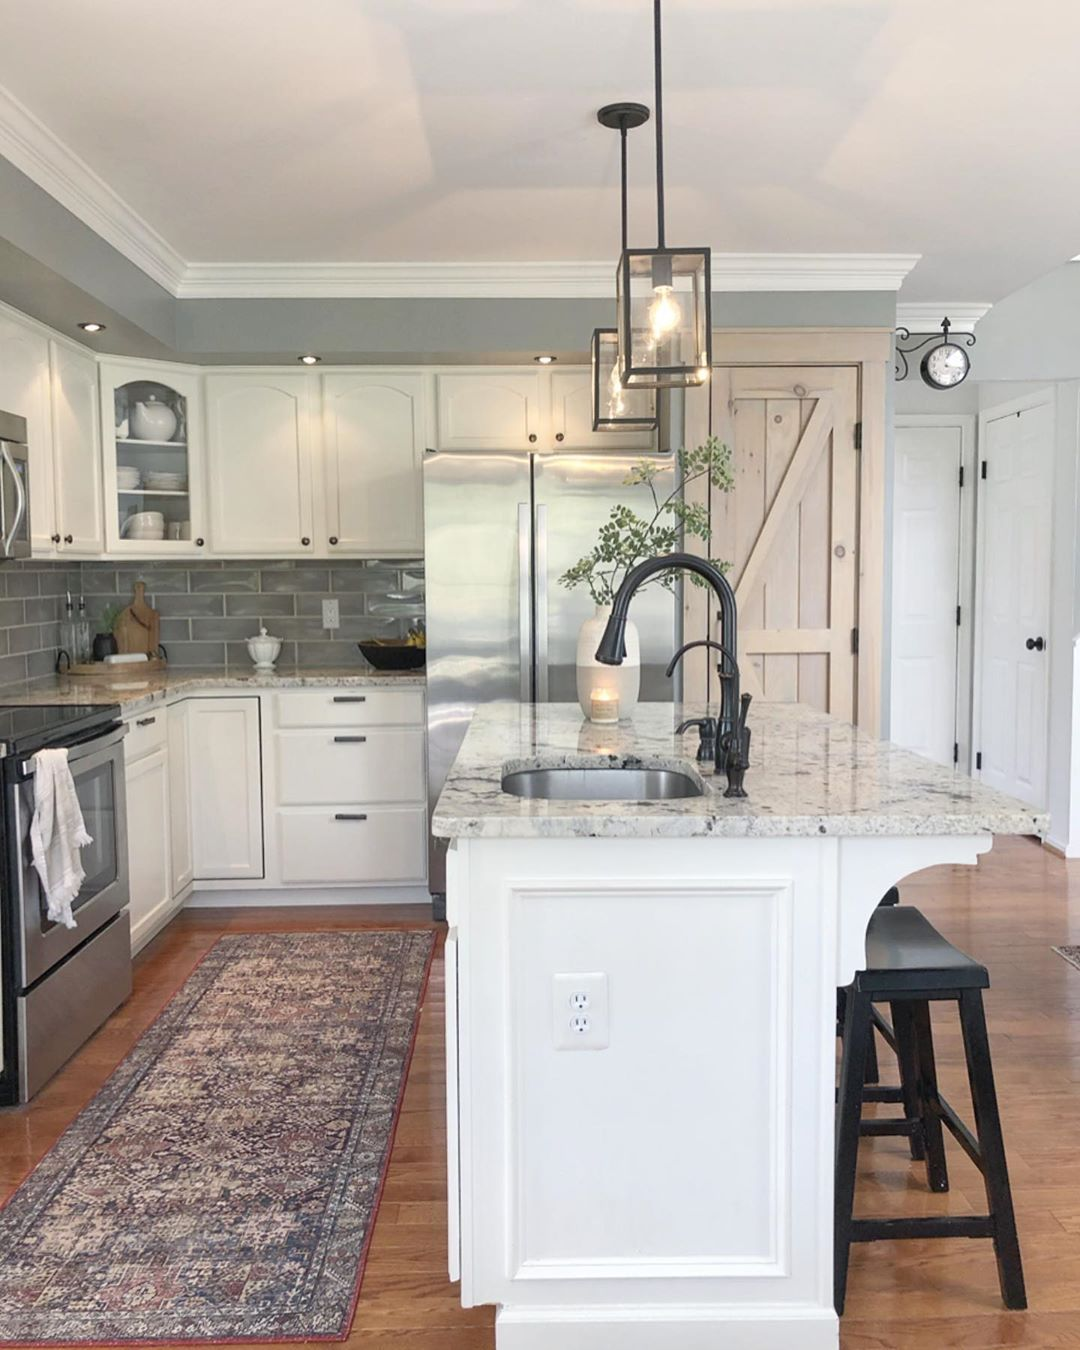 Jen Our Haven Bliss Home On Instagram Has Anyone Else Been Watching Tiger King Oh My Word So Crazy Here Is A Before A In 2020 Home Kitchen Beautiful Homes